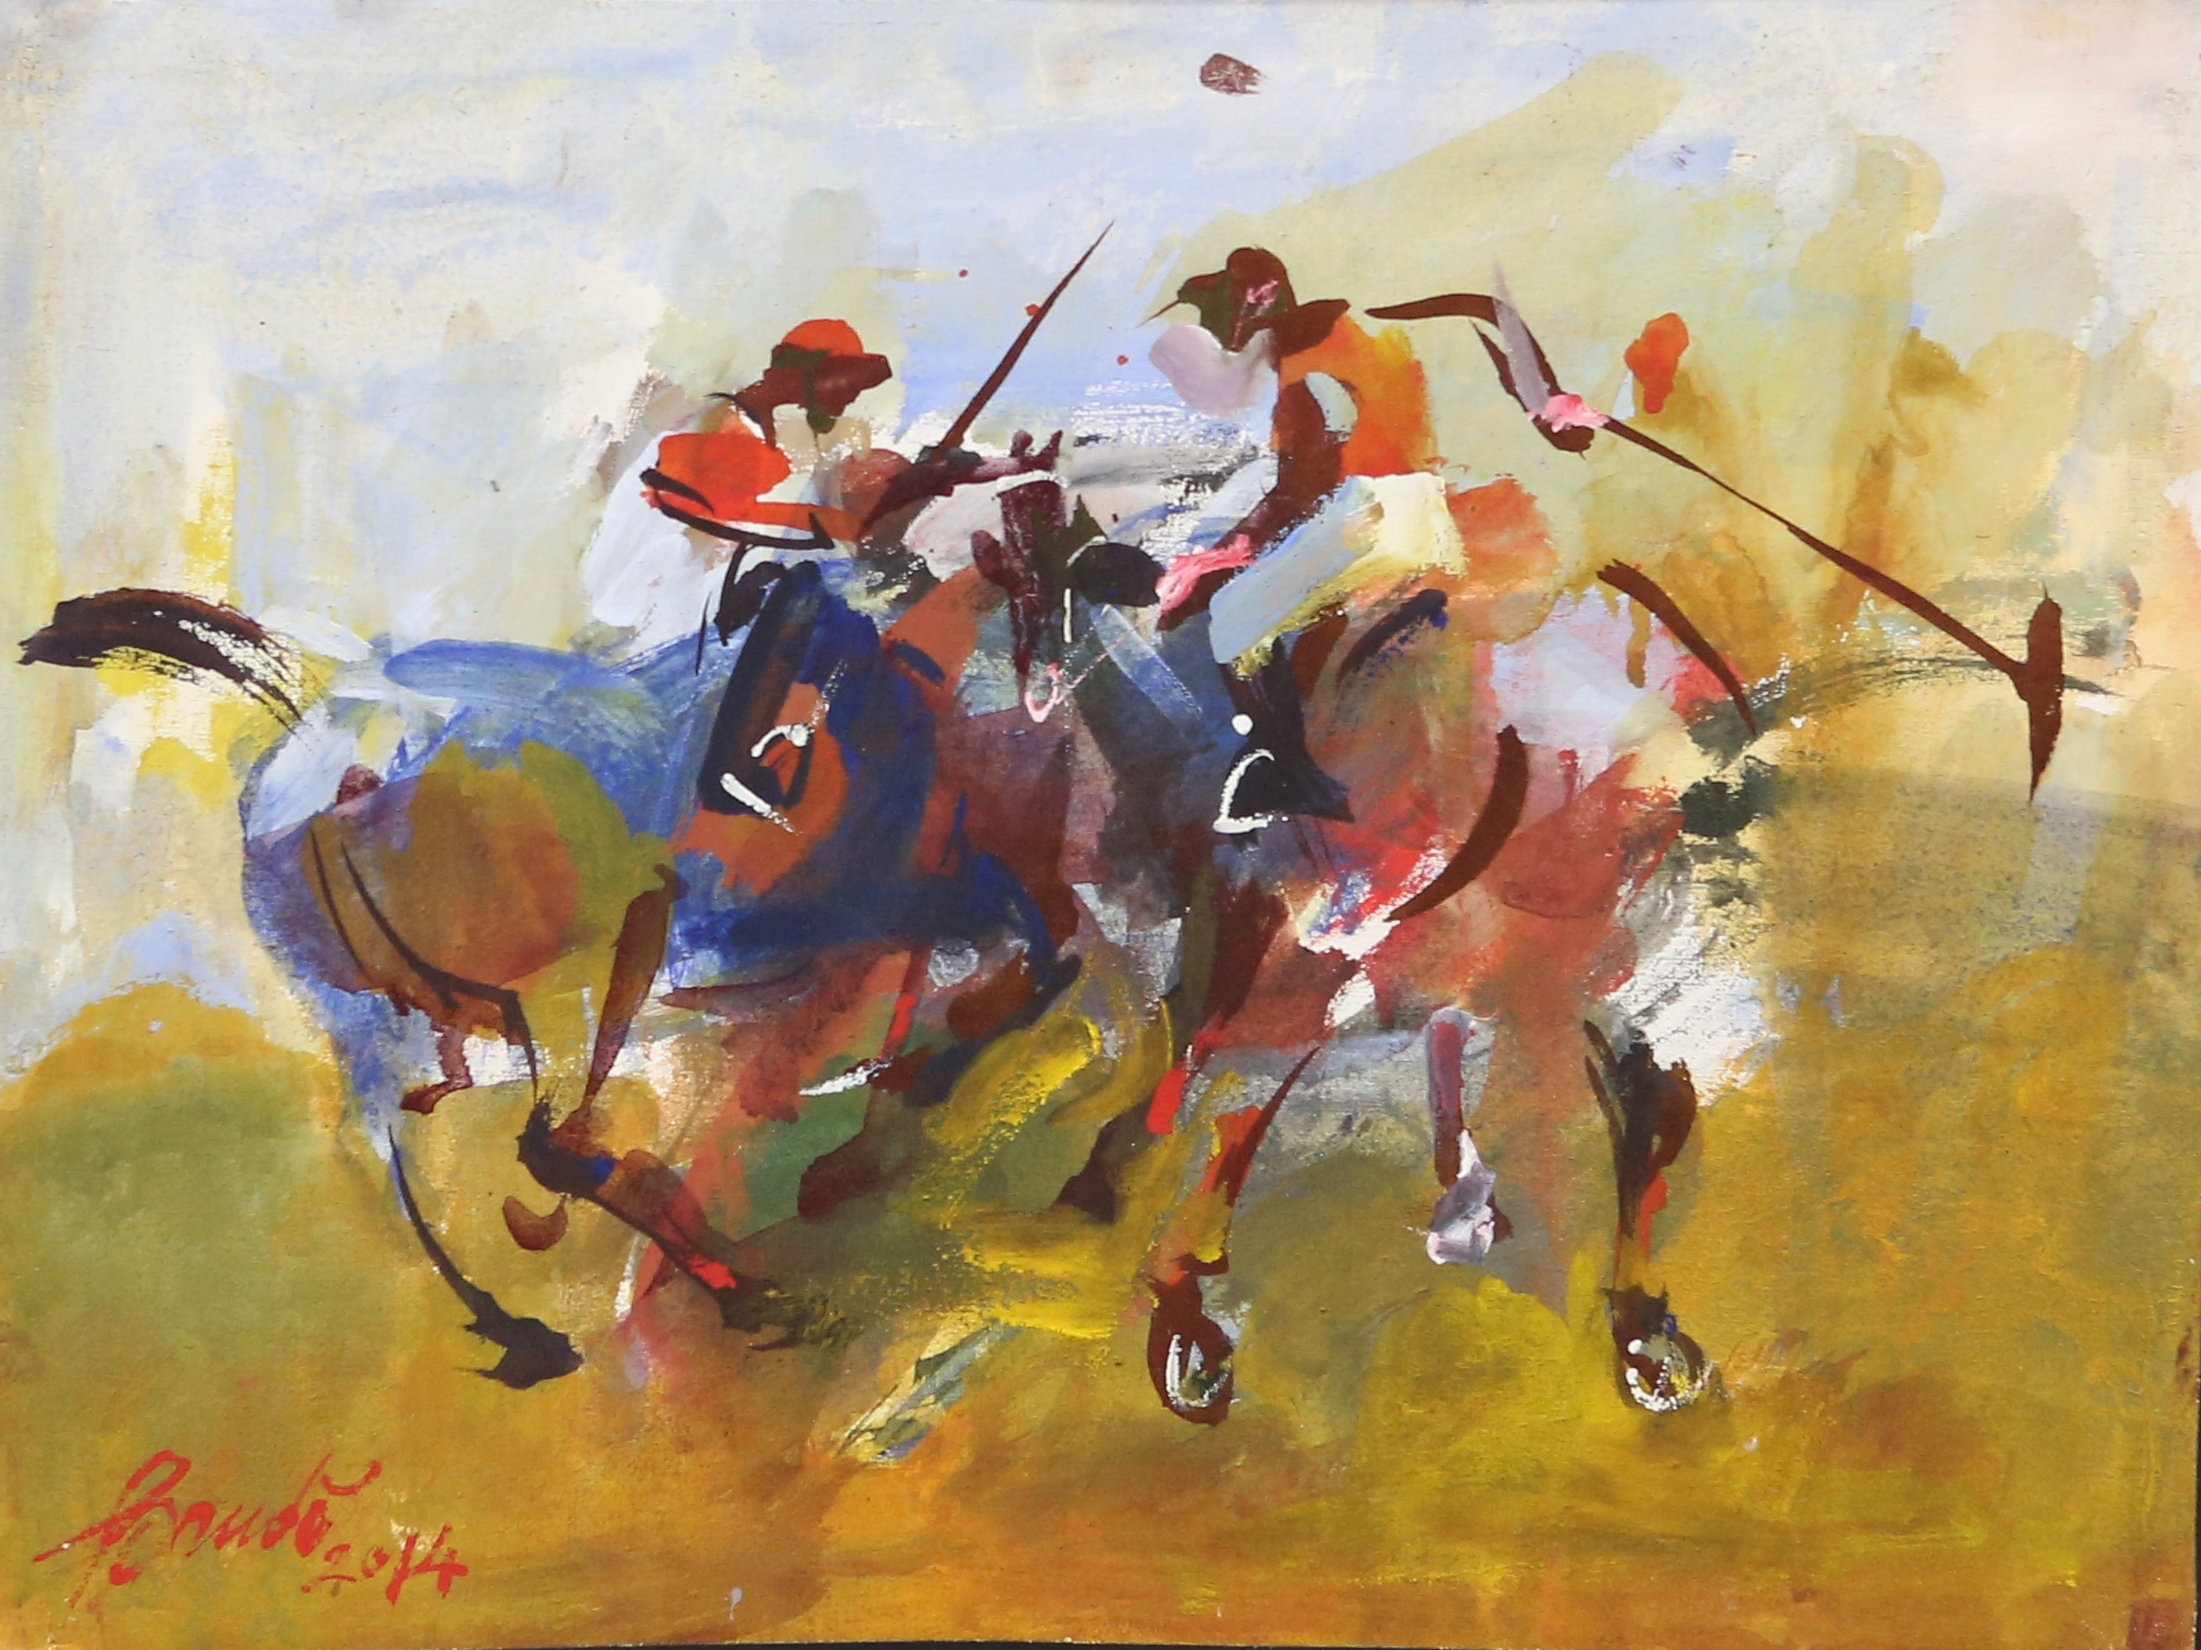 Polo players artwork by Ivankovitch Baudo - art listed for sale on Artplode